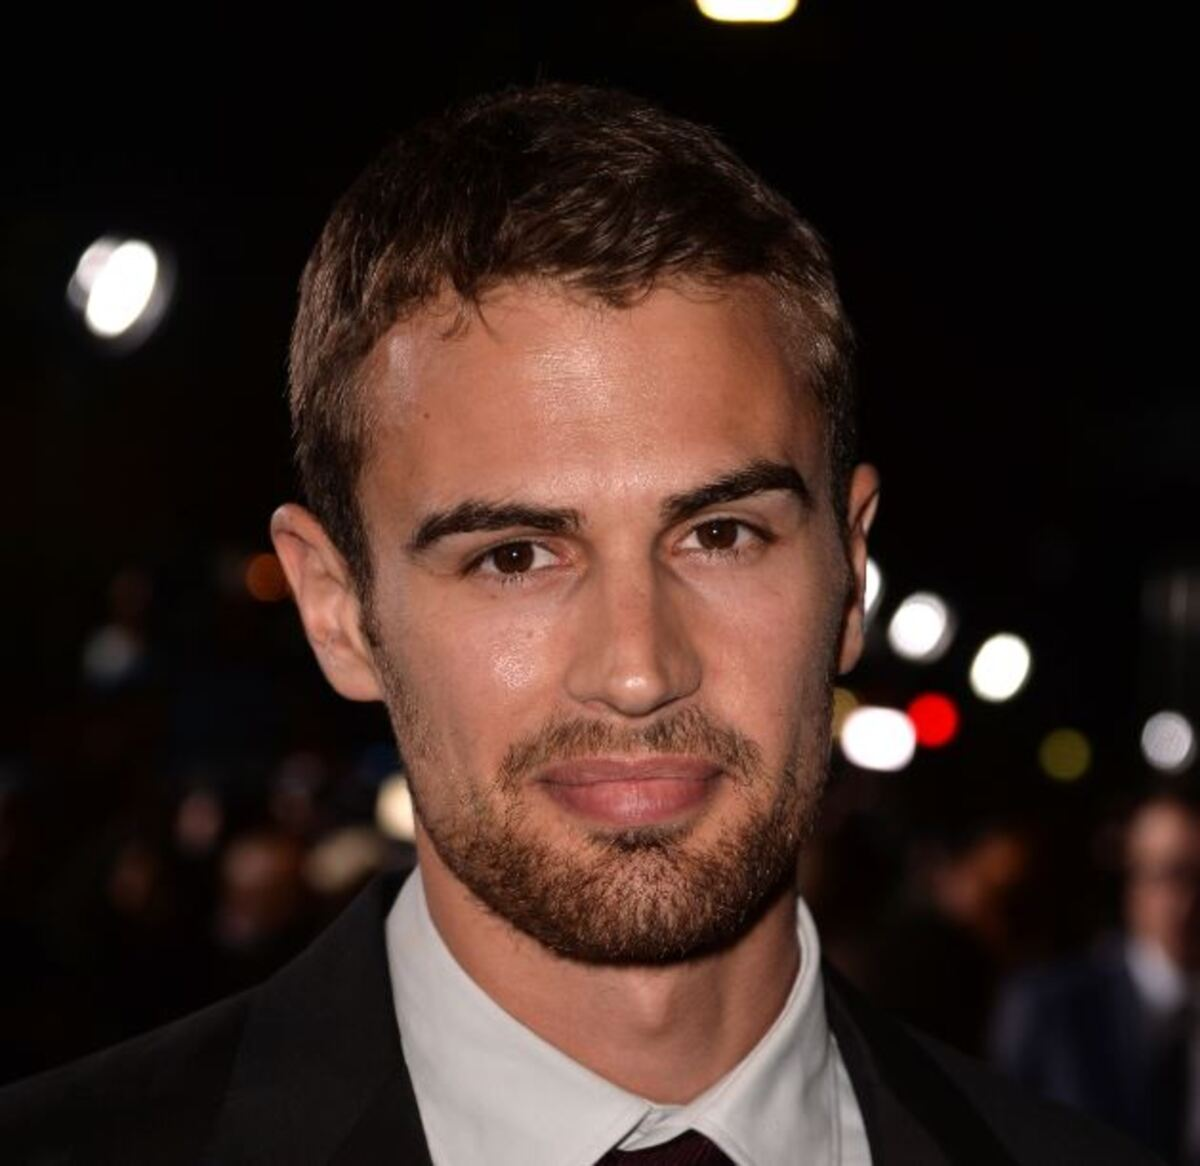 Who is theo james